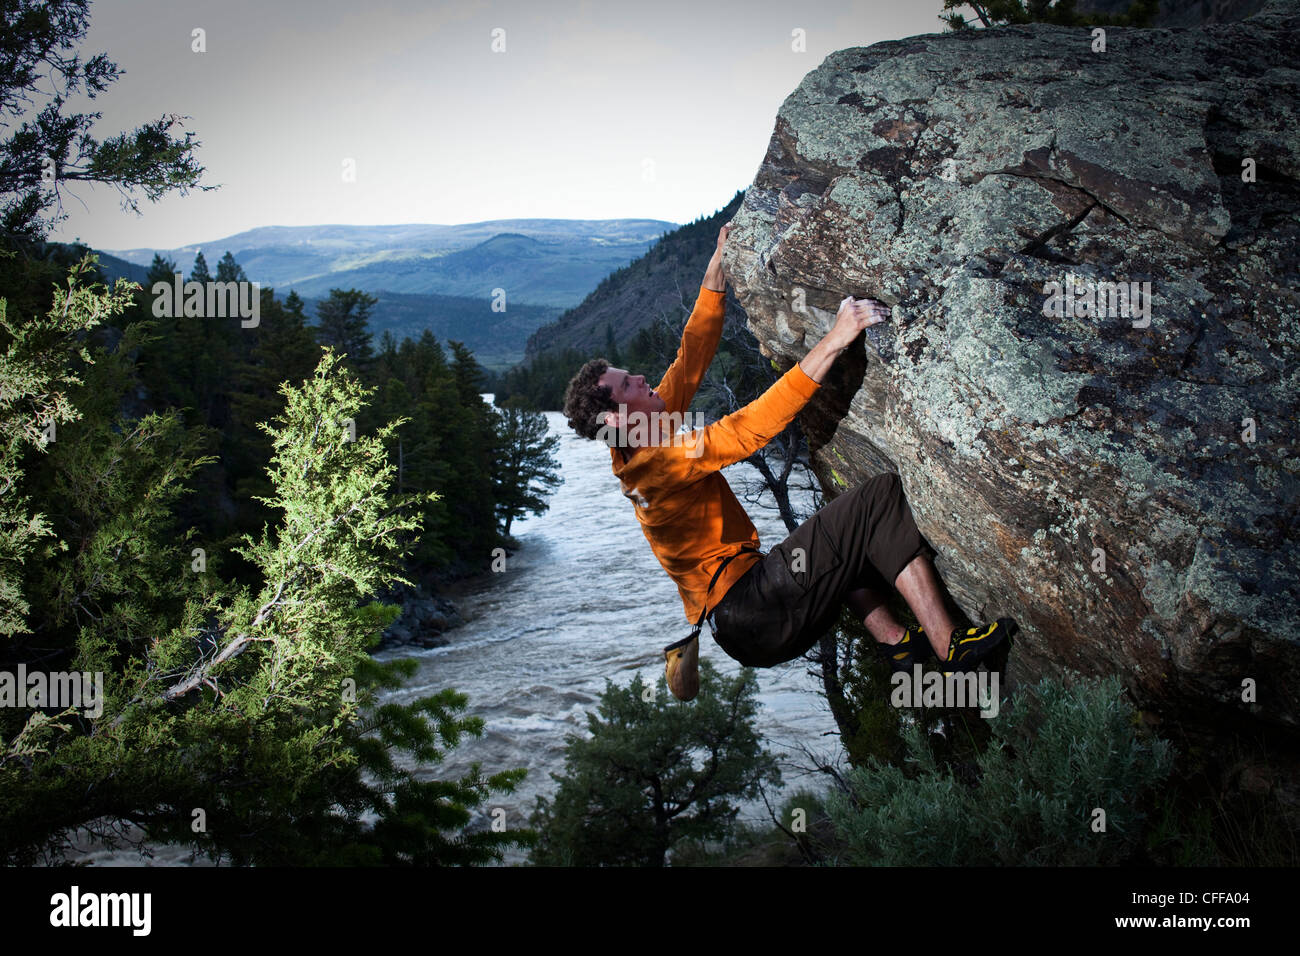 A athletic man bouldering above a river in Montana. - Stock Image